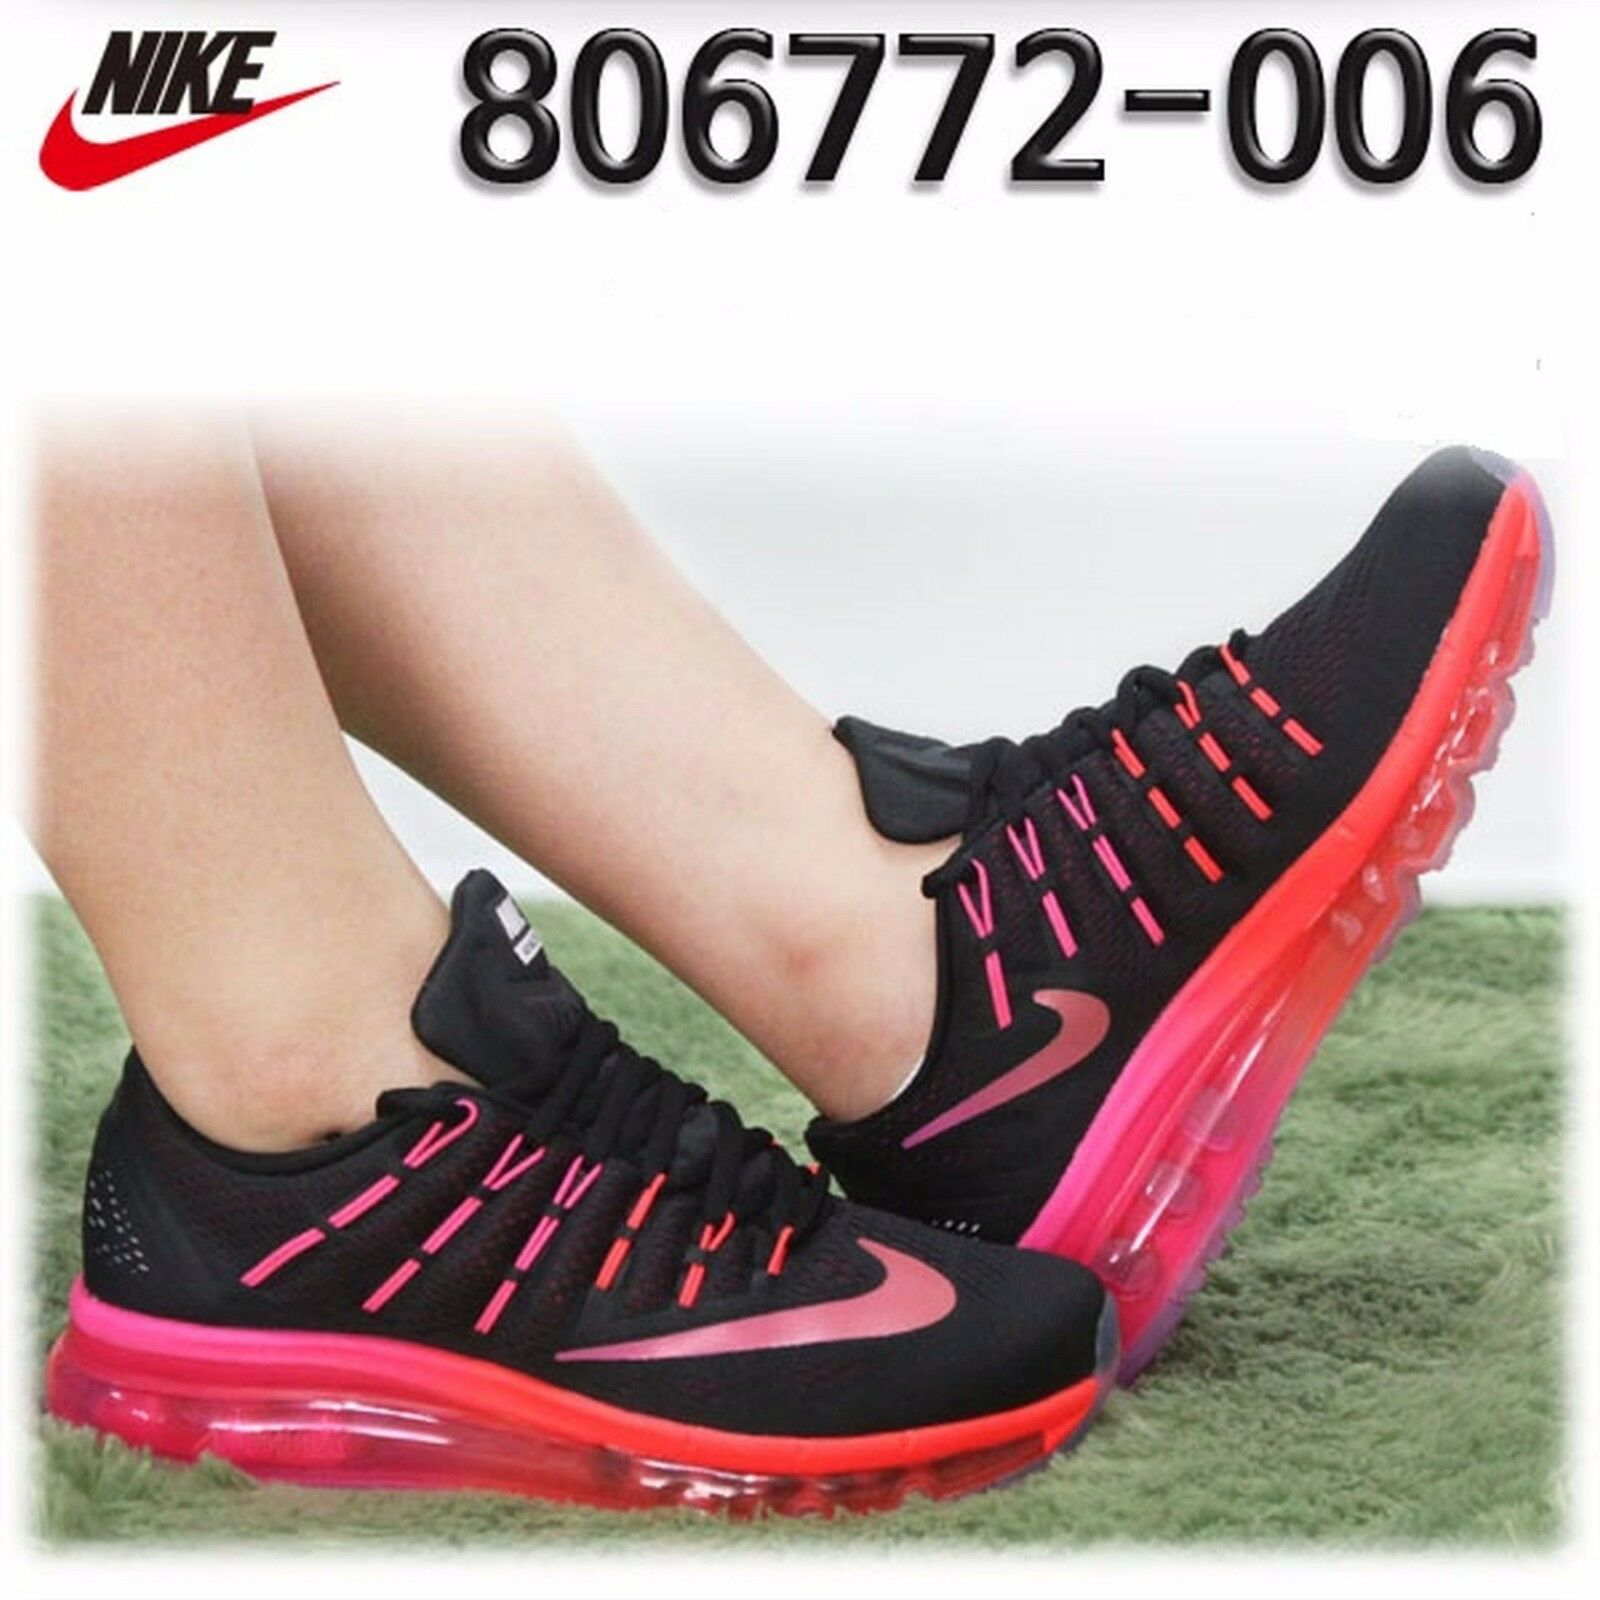 NIKE Air Max 2016 Wmns Shoes Size 9.5 806772-006 Black/Multi-Color/Noble Red